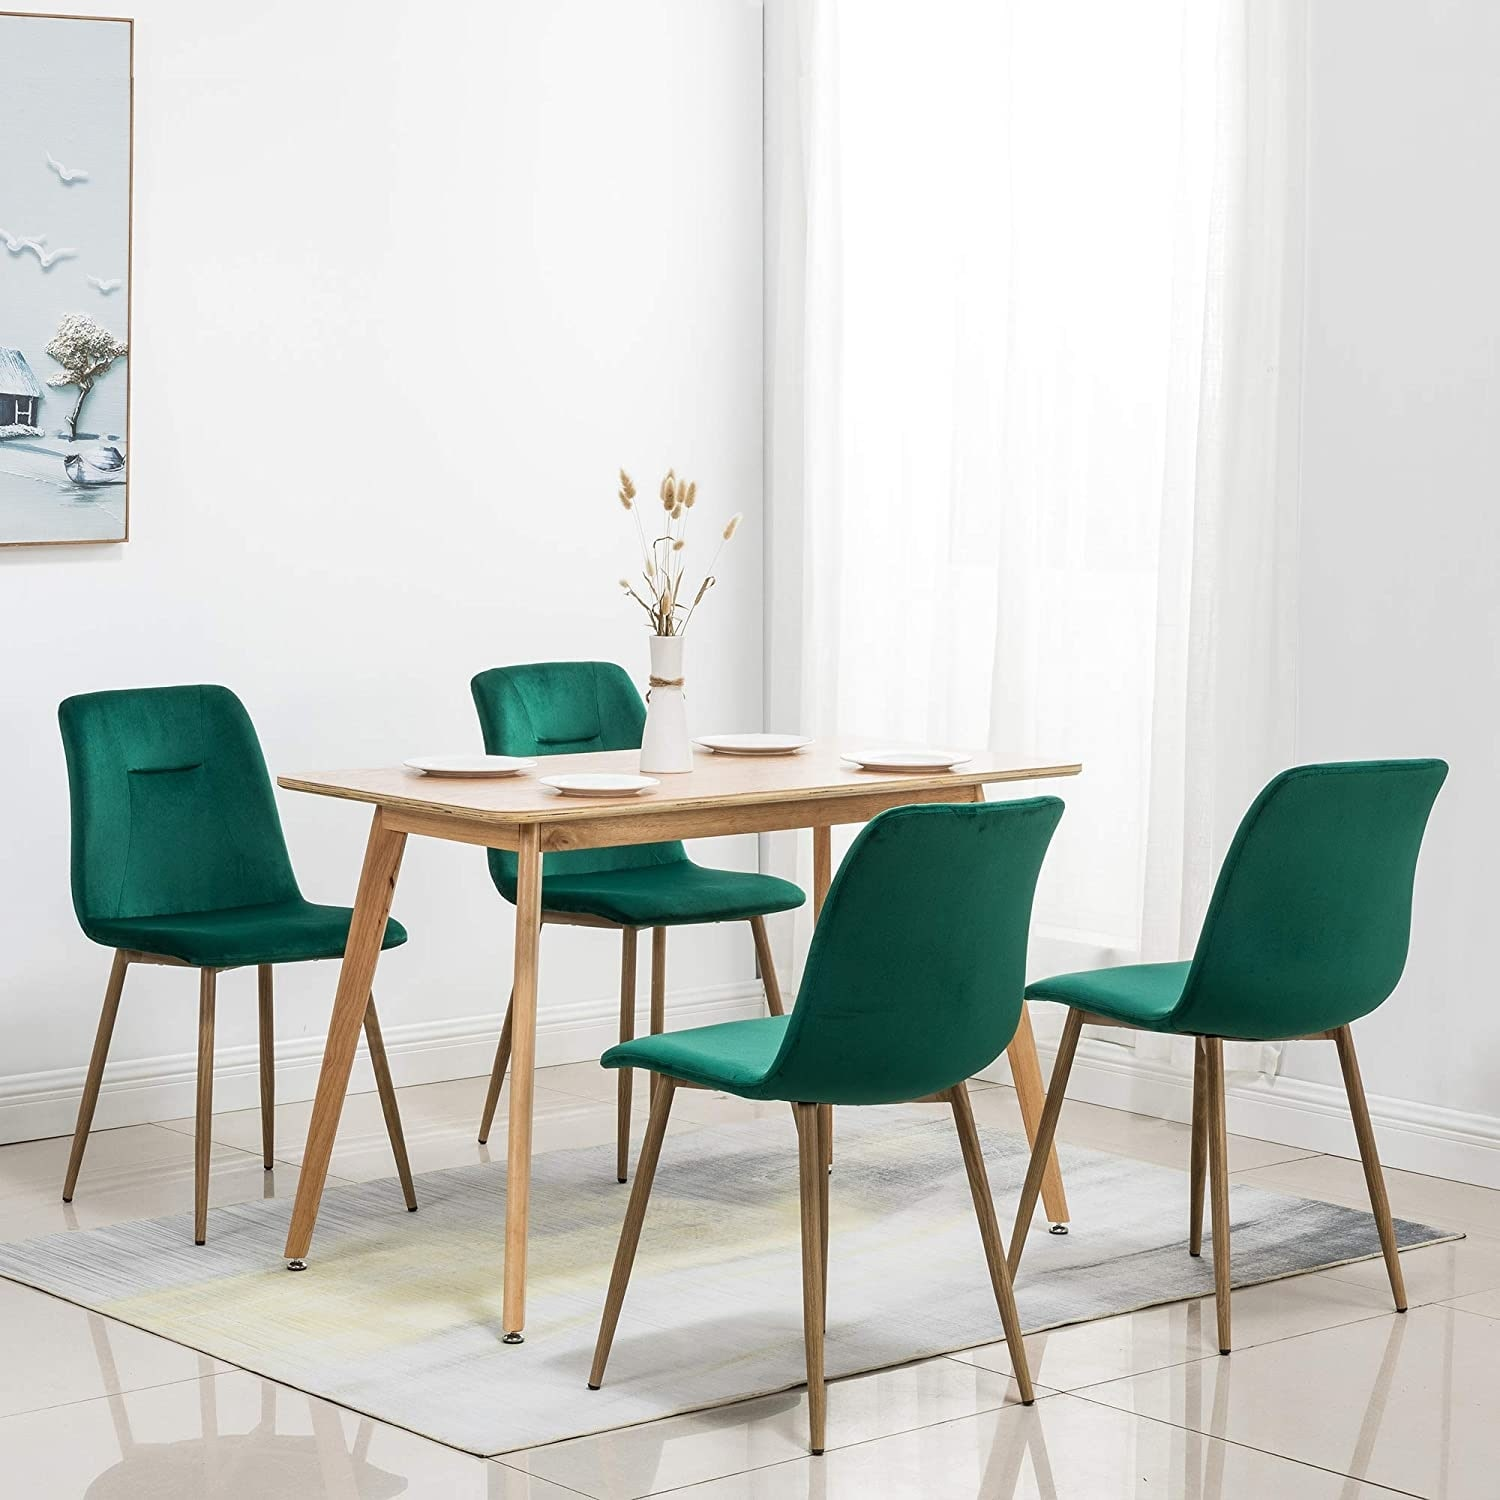 Shop Black Friday Deals On Ivinta Modern Living Room Accent Armless Chairs Set Of 4 Velvet Dining Chairs Overstock 31756368 Yellow